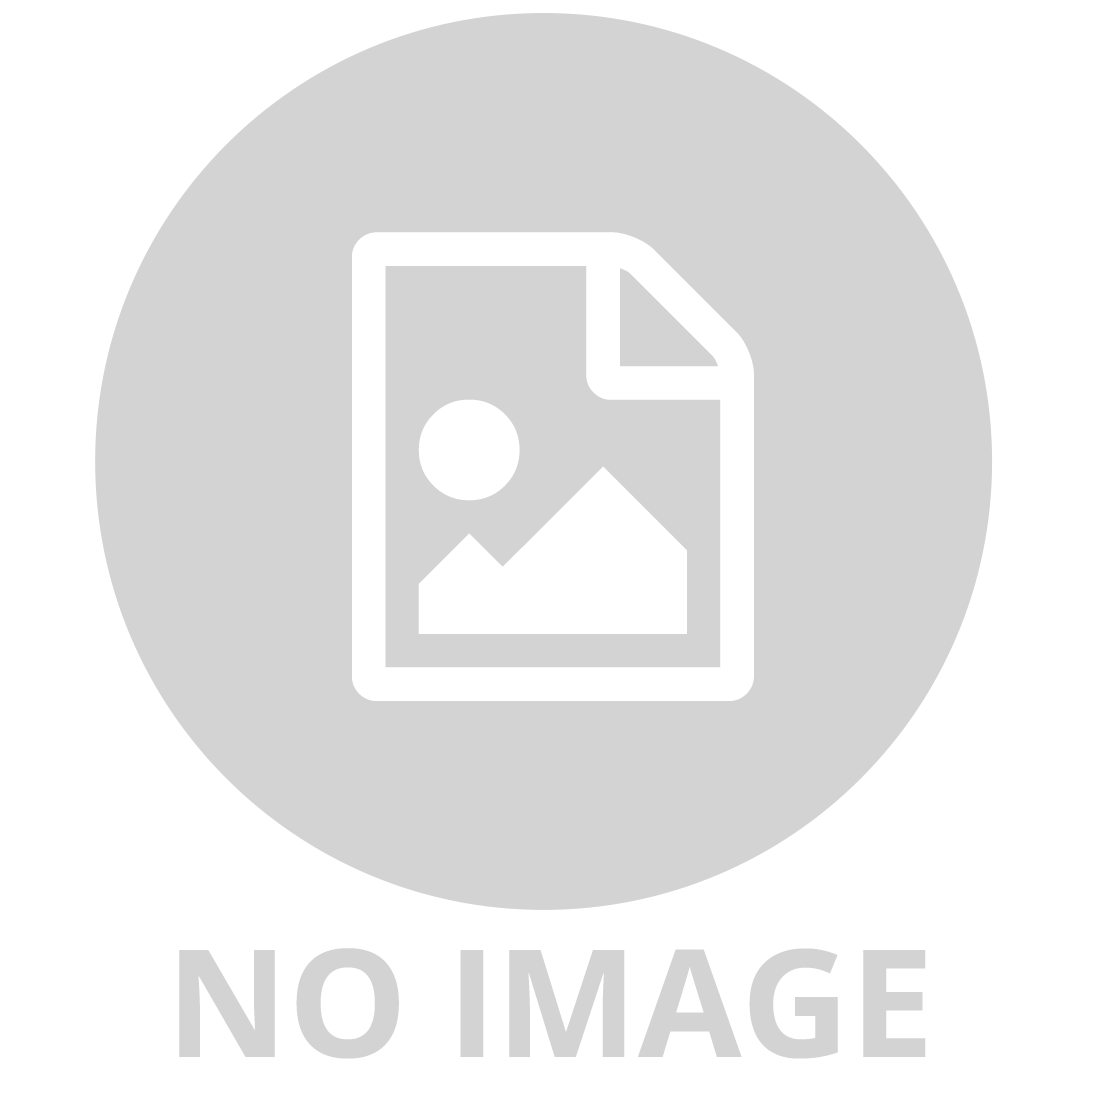 BLING YOUR OWN HEADPHONES